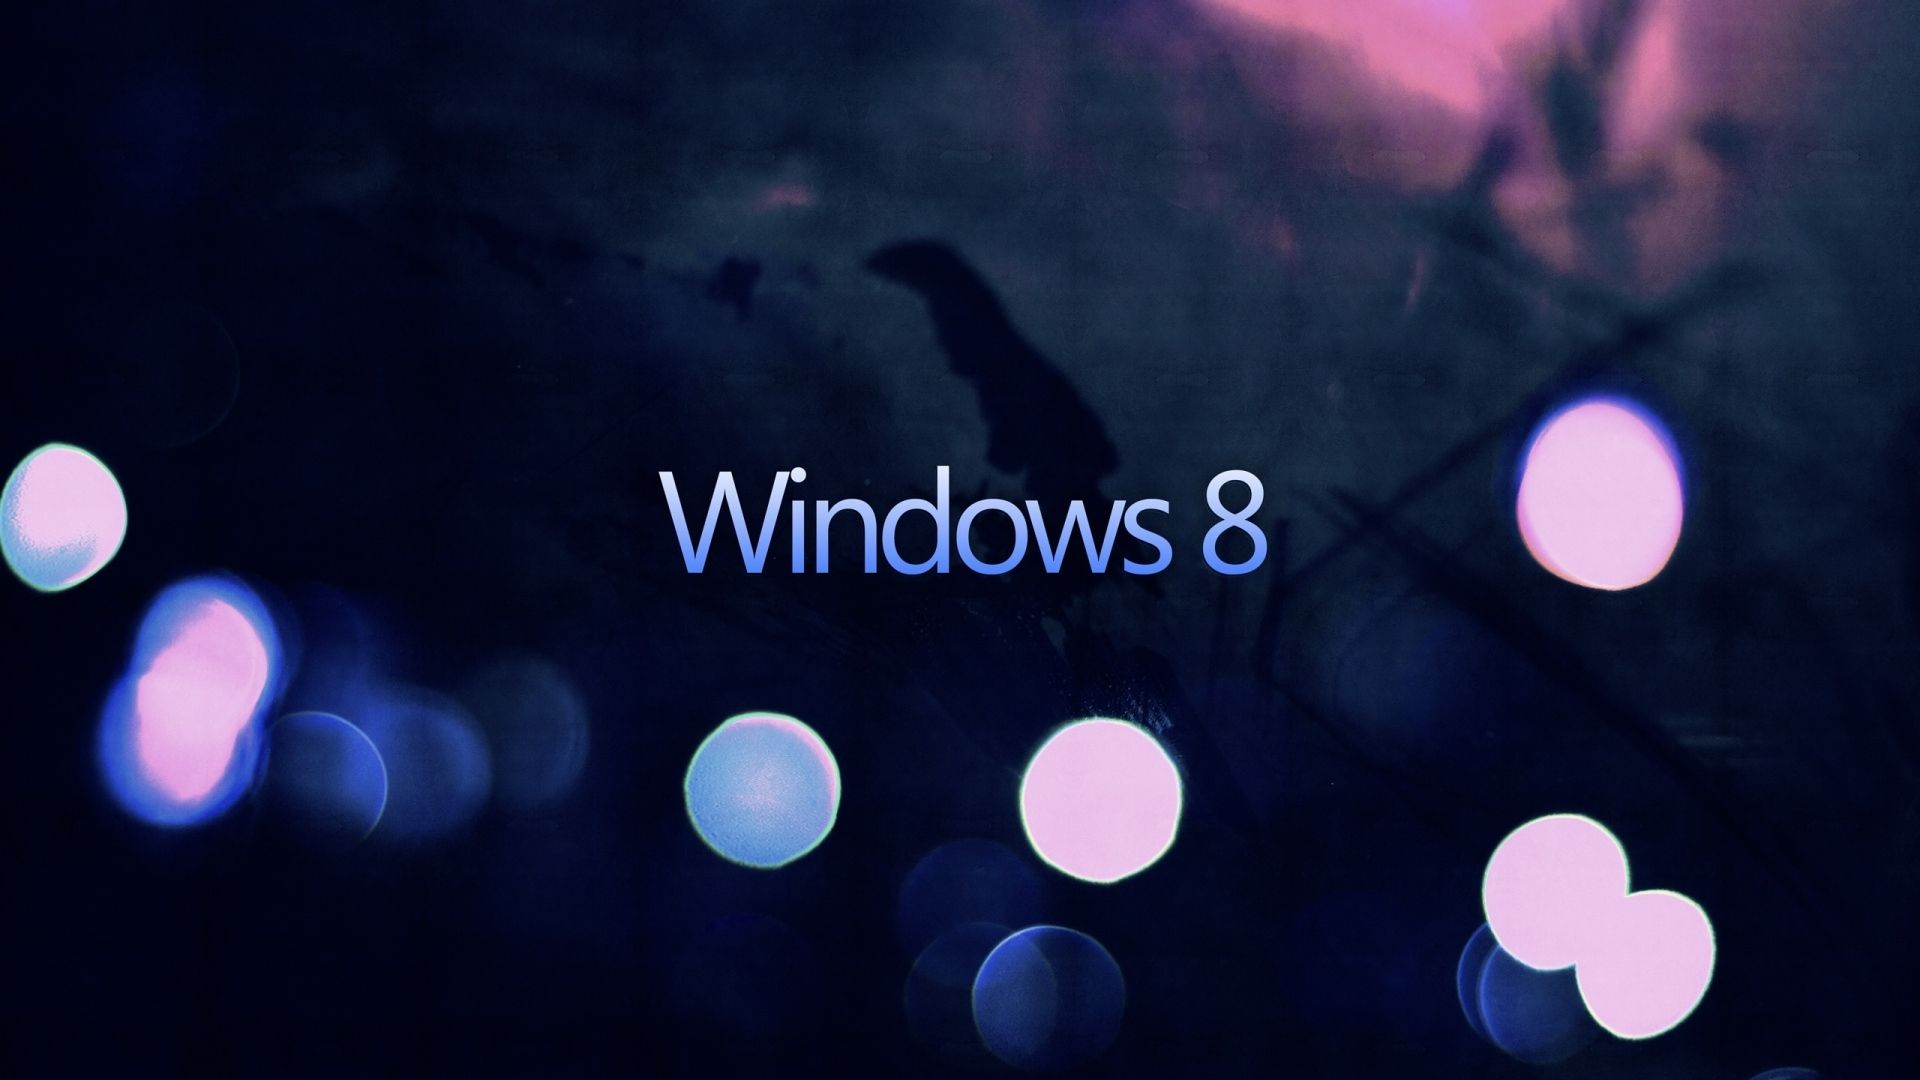 Full Hd 1080p Windows 8 Wallpapers Hd Desktop Backgrounds Dark Windows Windows Wallpaper Windows